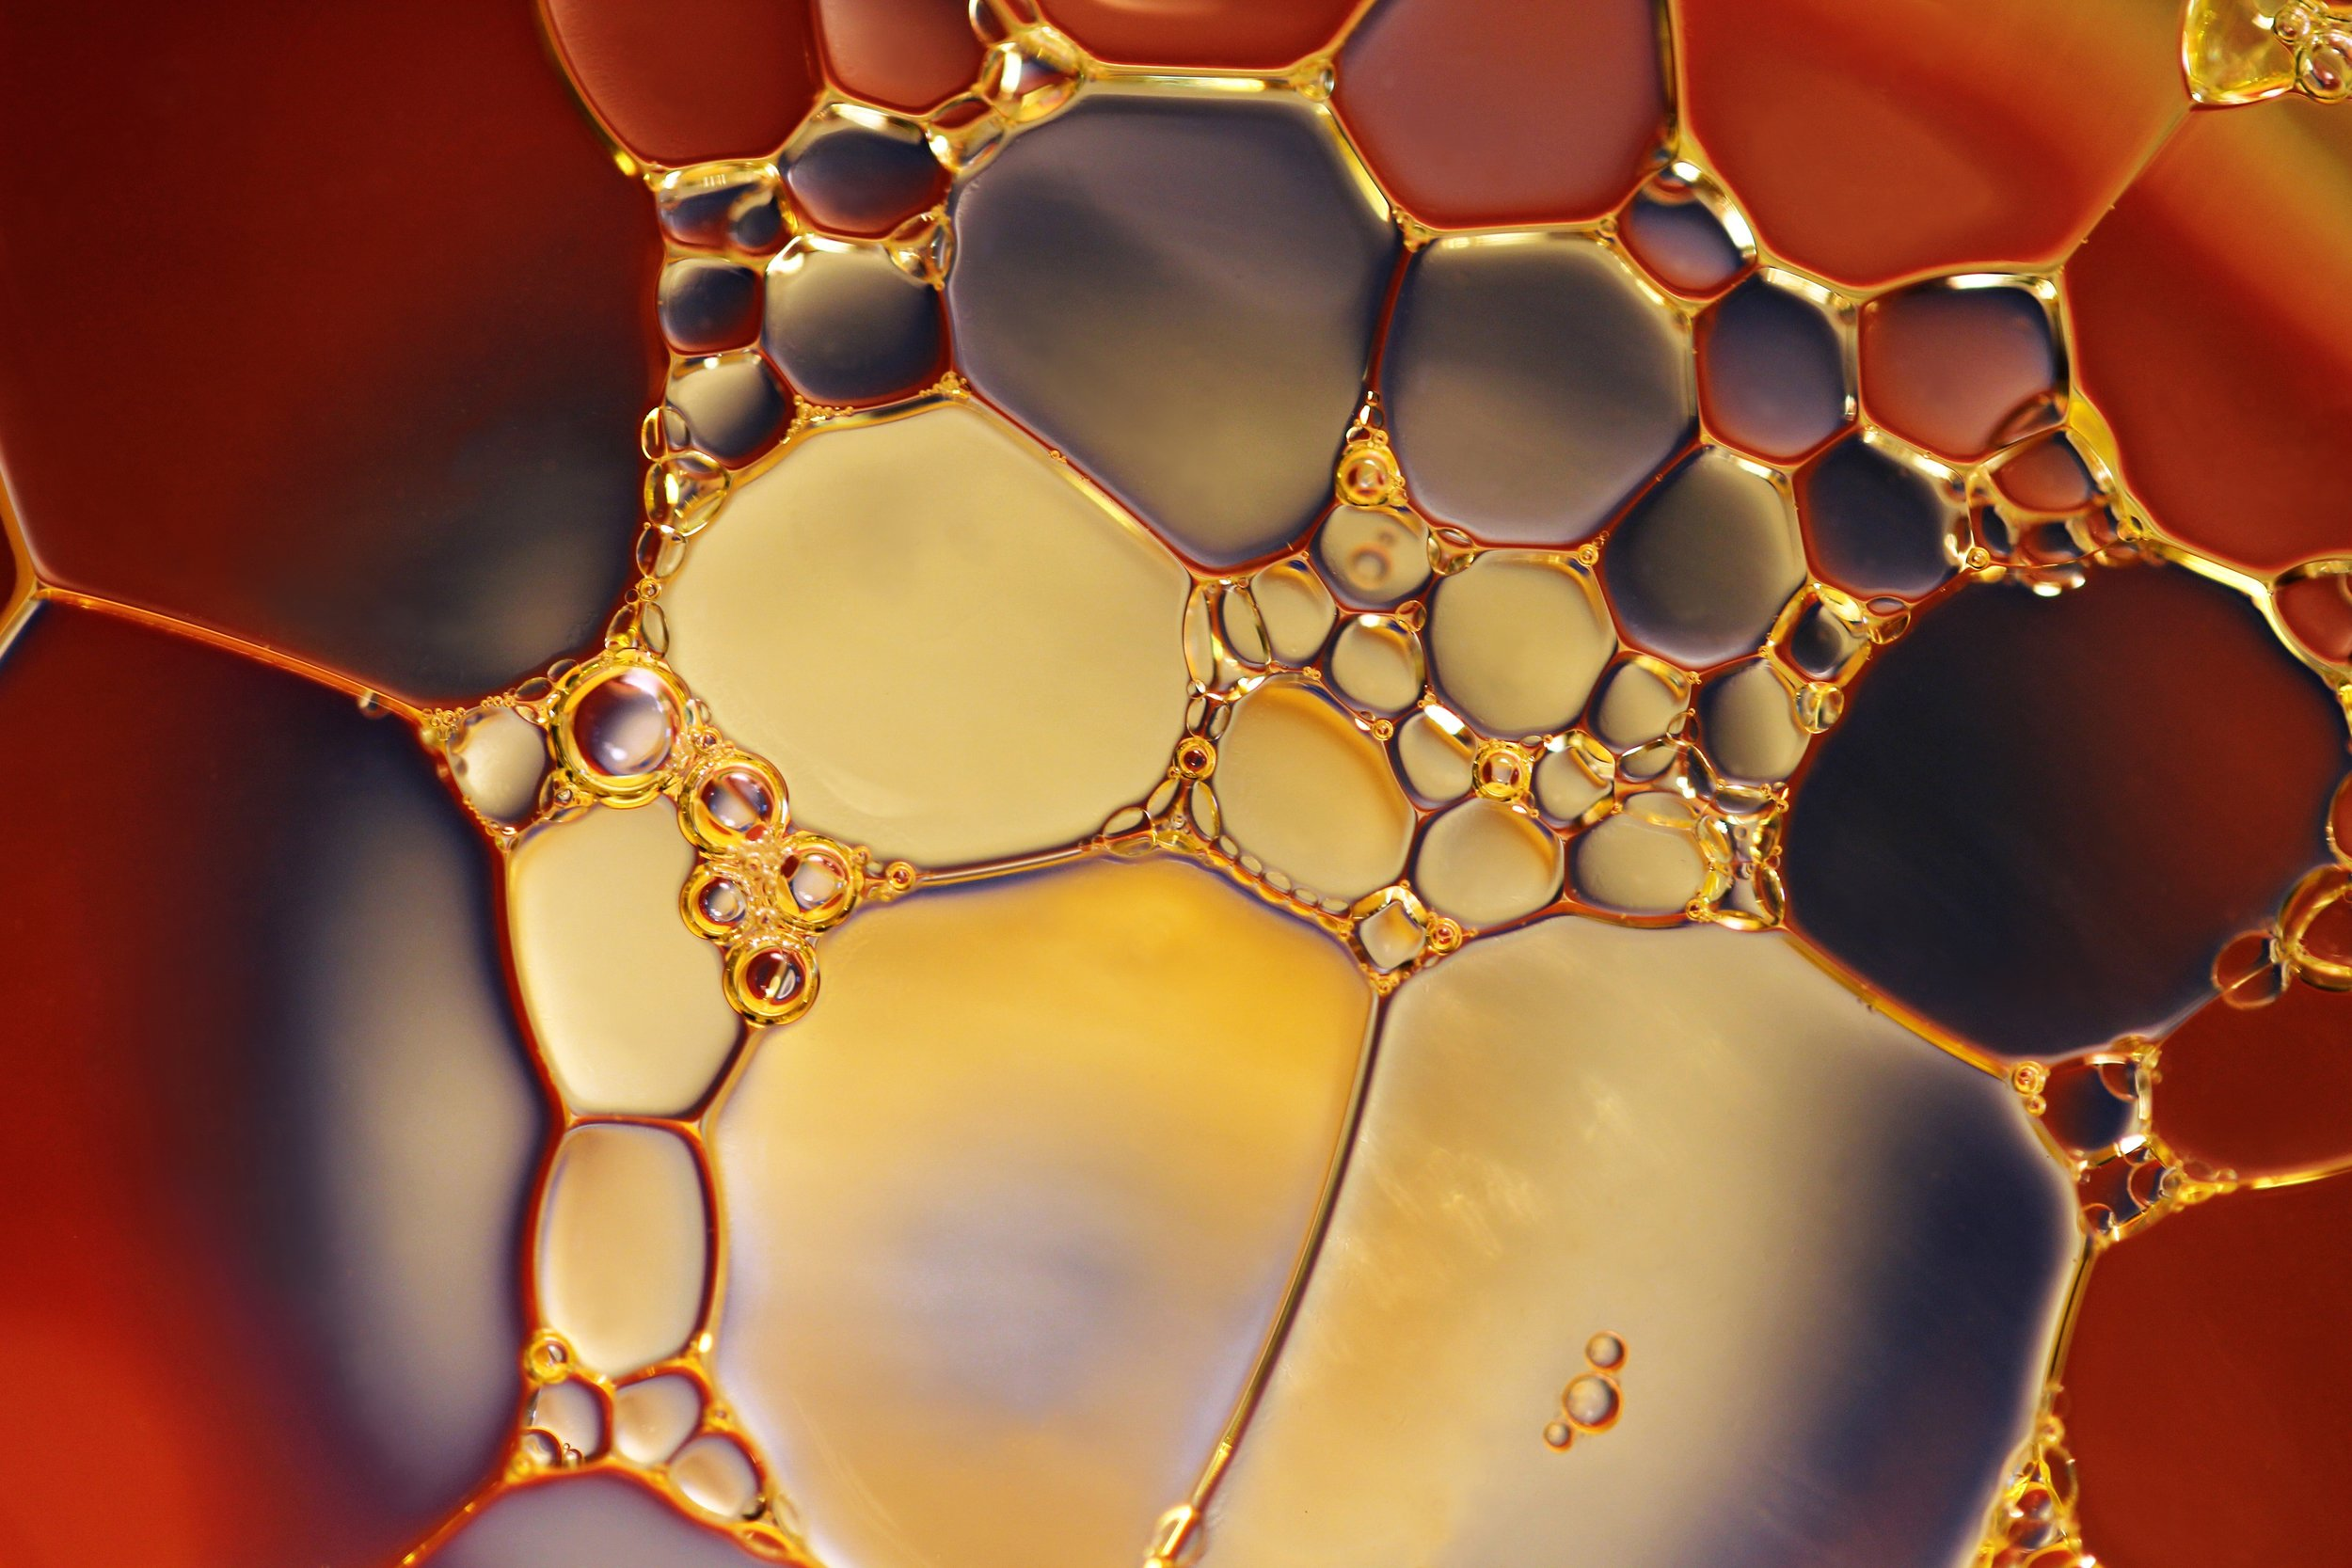 chemistry-close-up-color-220989.jpg